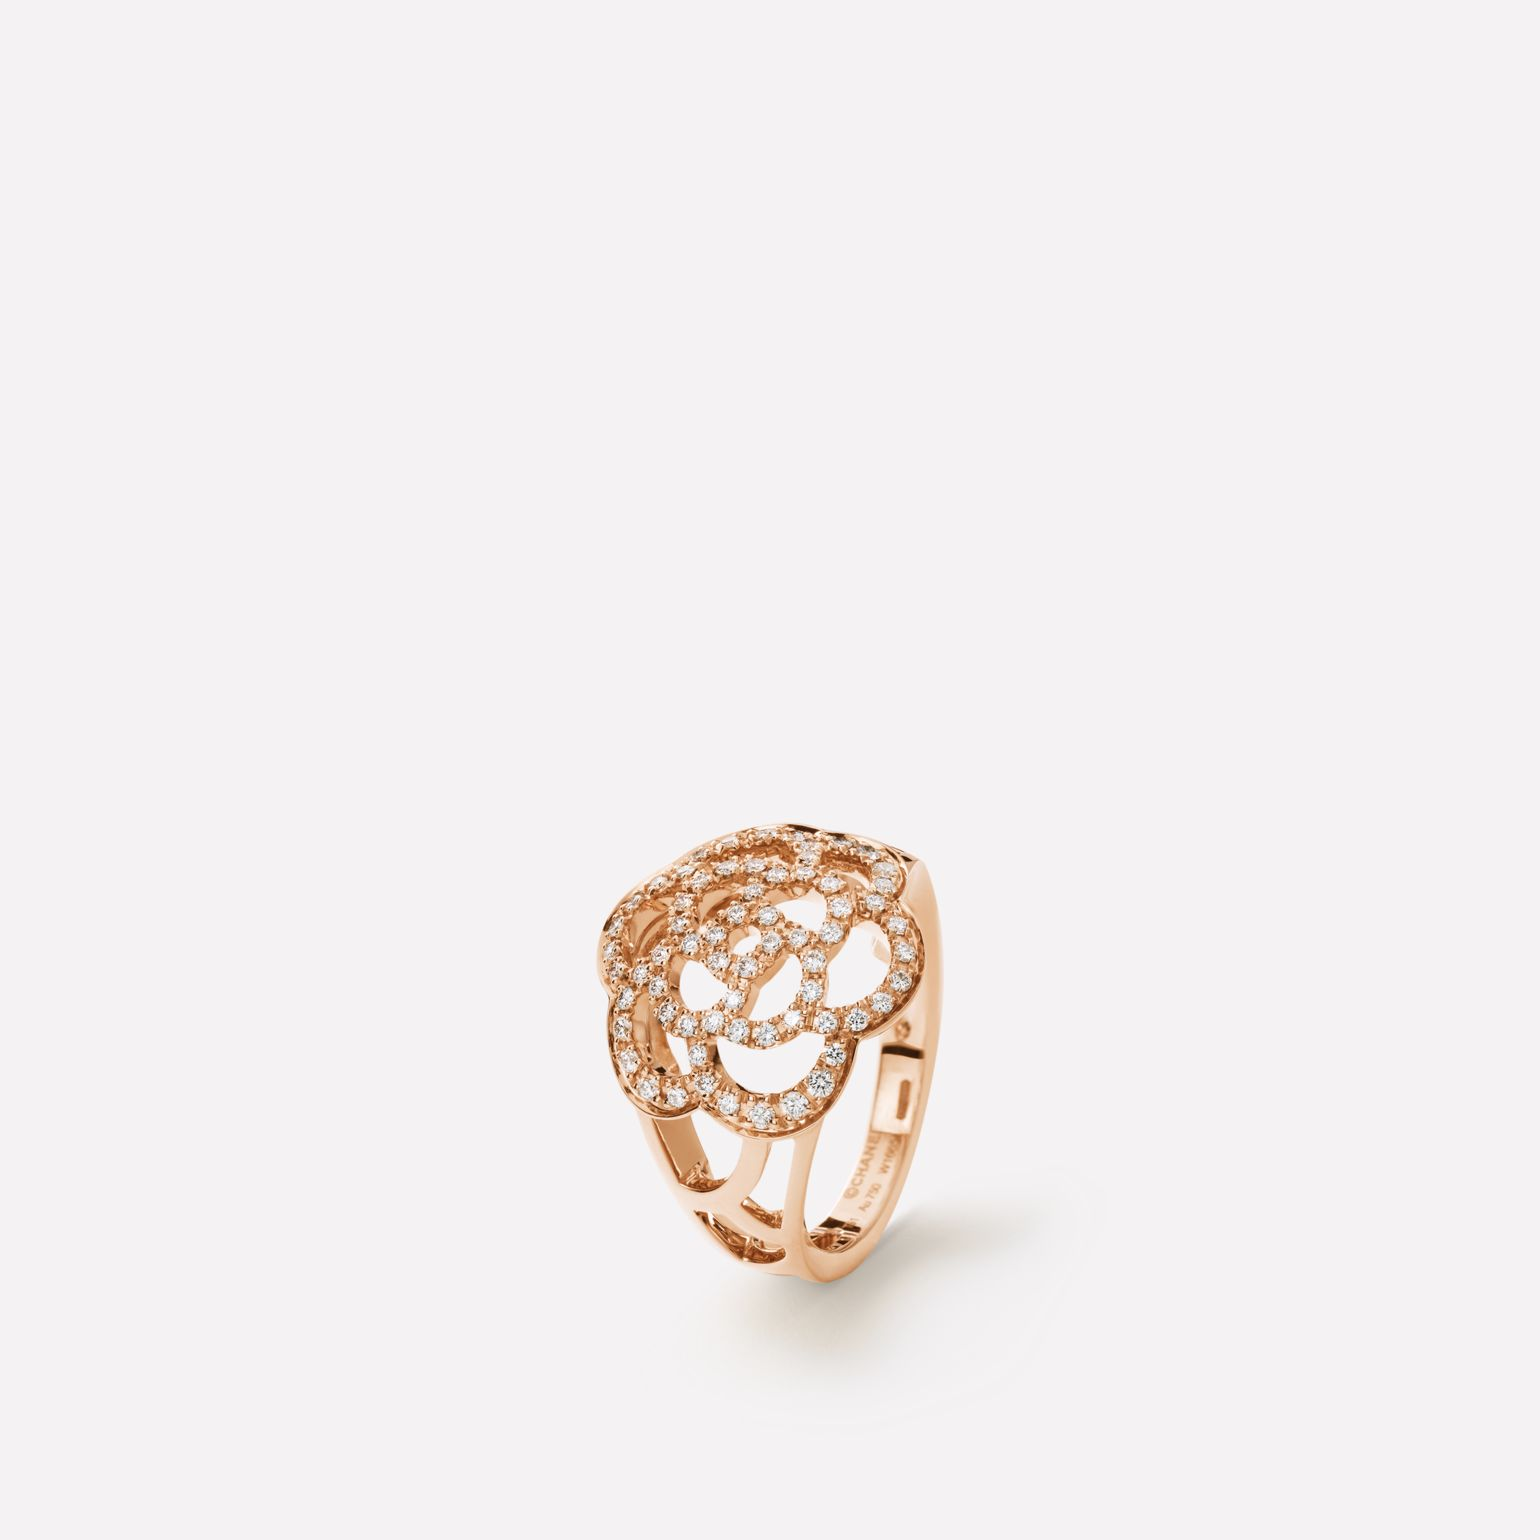 Camélia Ajouré ring 18K pink gold, diamonds